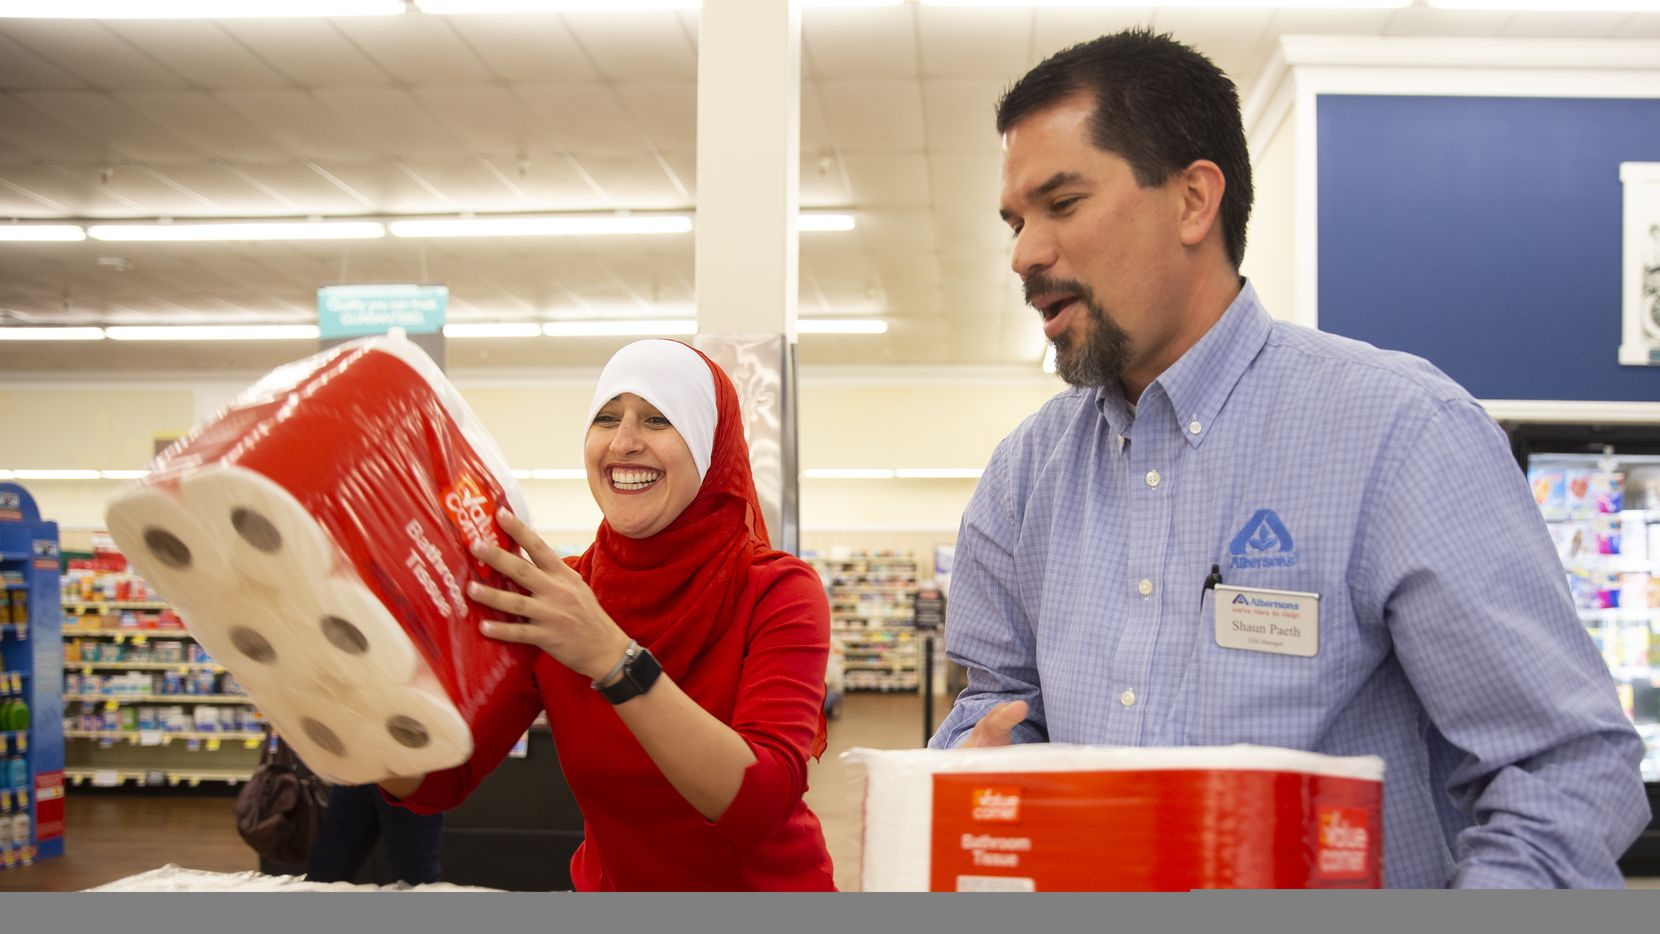 Maha Eldabaja, Center Store Operations Specialist, (left) and Shaun Paeth, head of general merchandise, refill the toilet paper spillover display at Albertson's on March 20, 2020 in Colleyville. The store has limited the amount of paper products customers can purchase. (Juan Figueroa/ The Dallas Morning News)